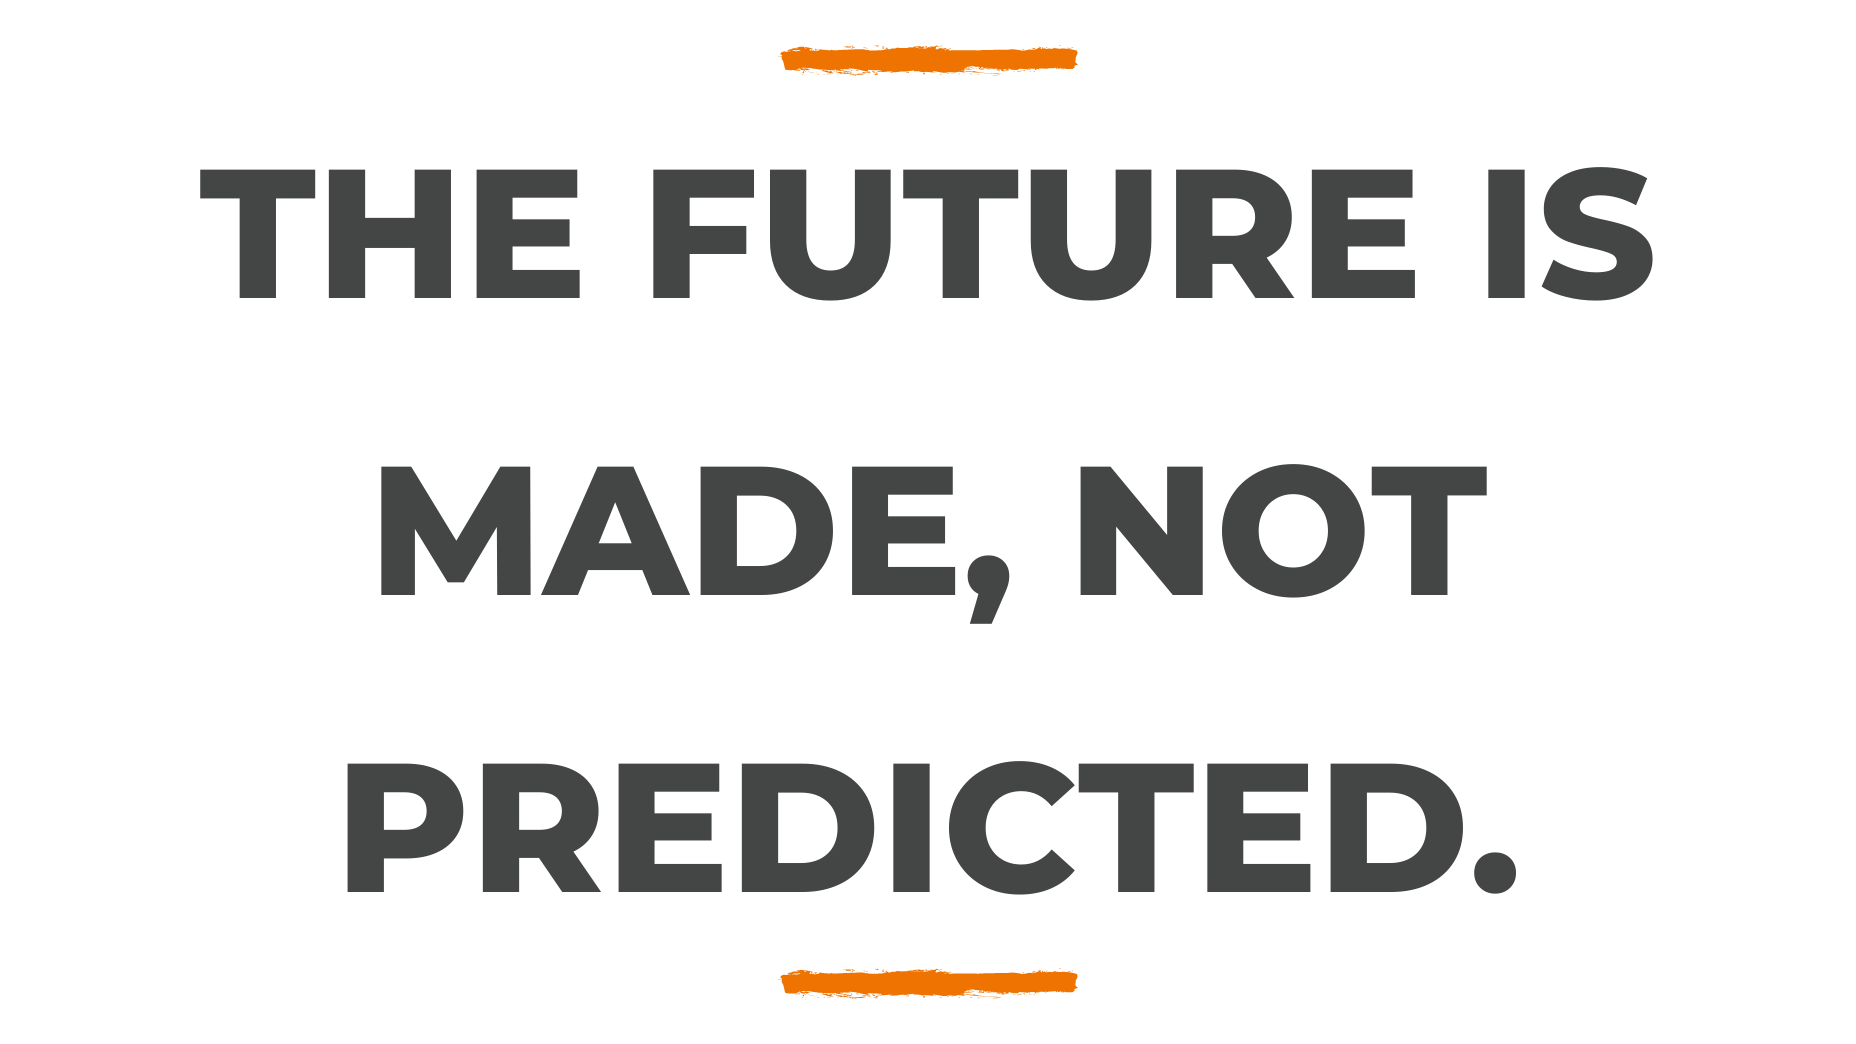 The future is made. Not predicted.